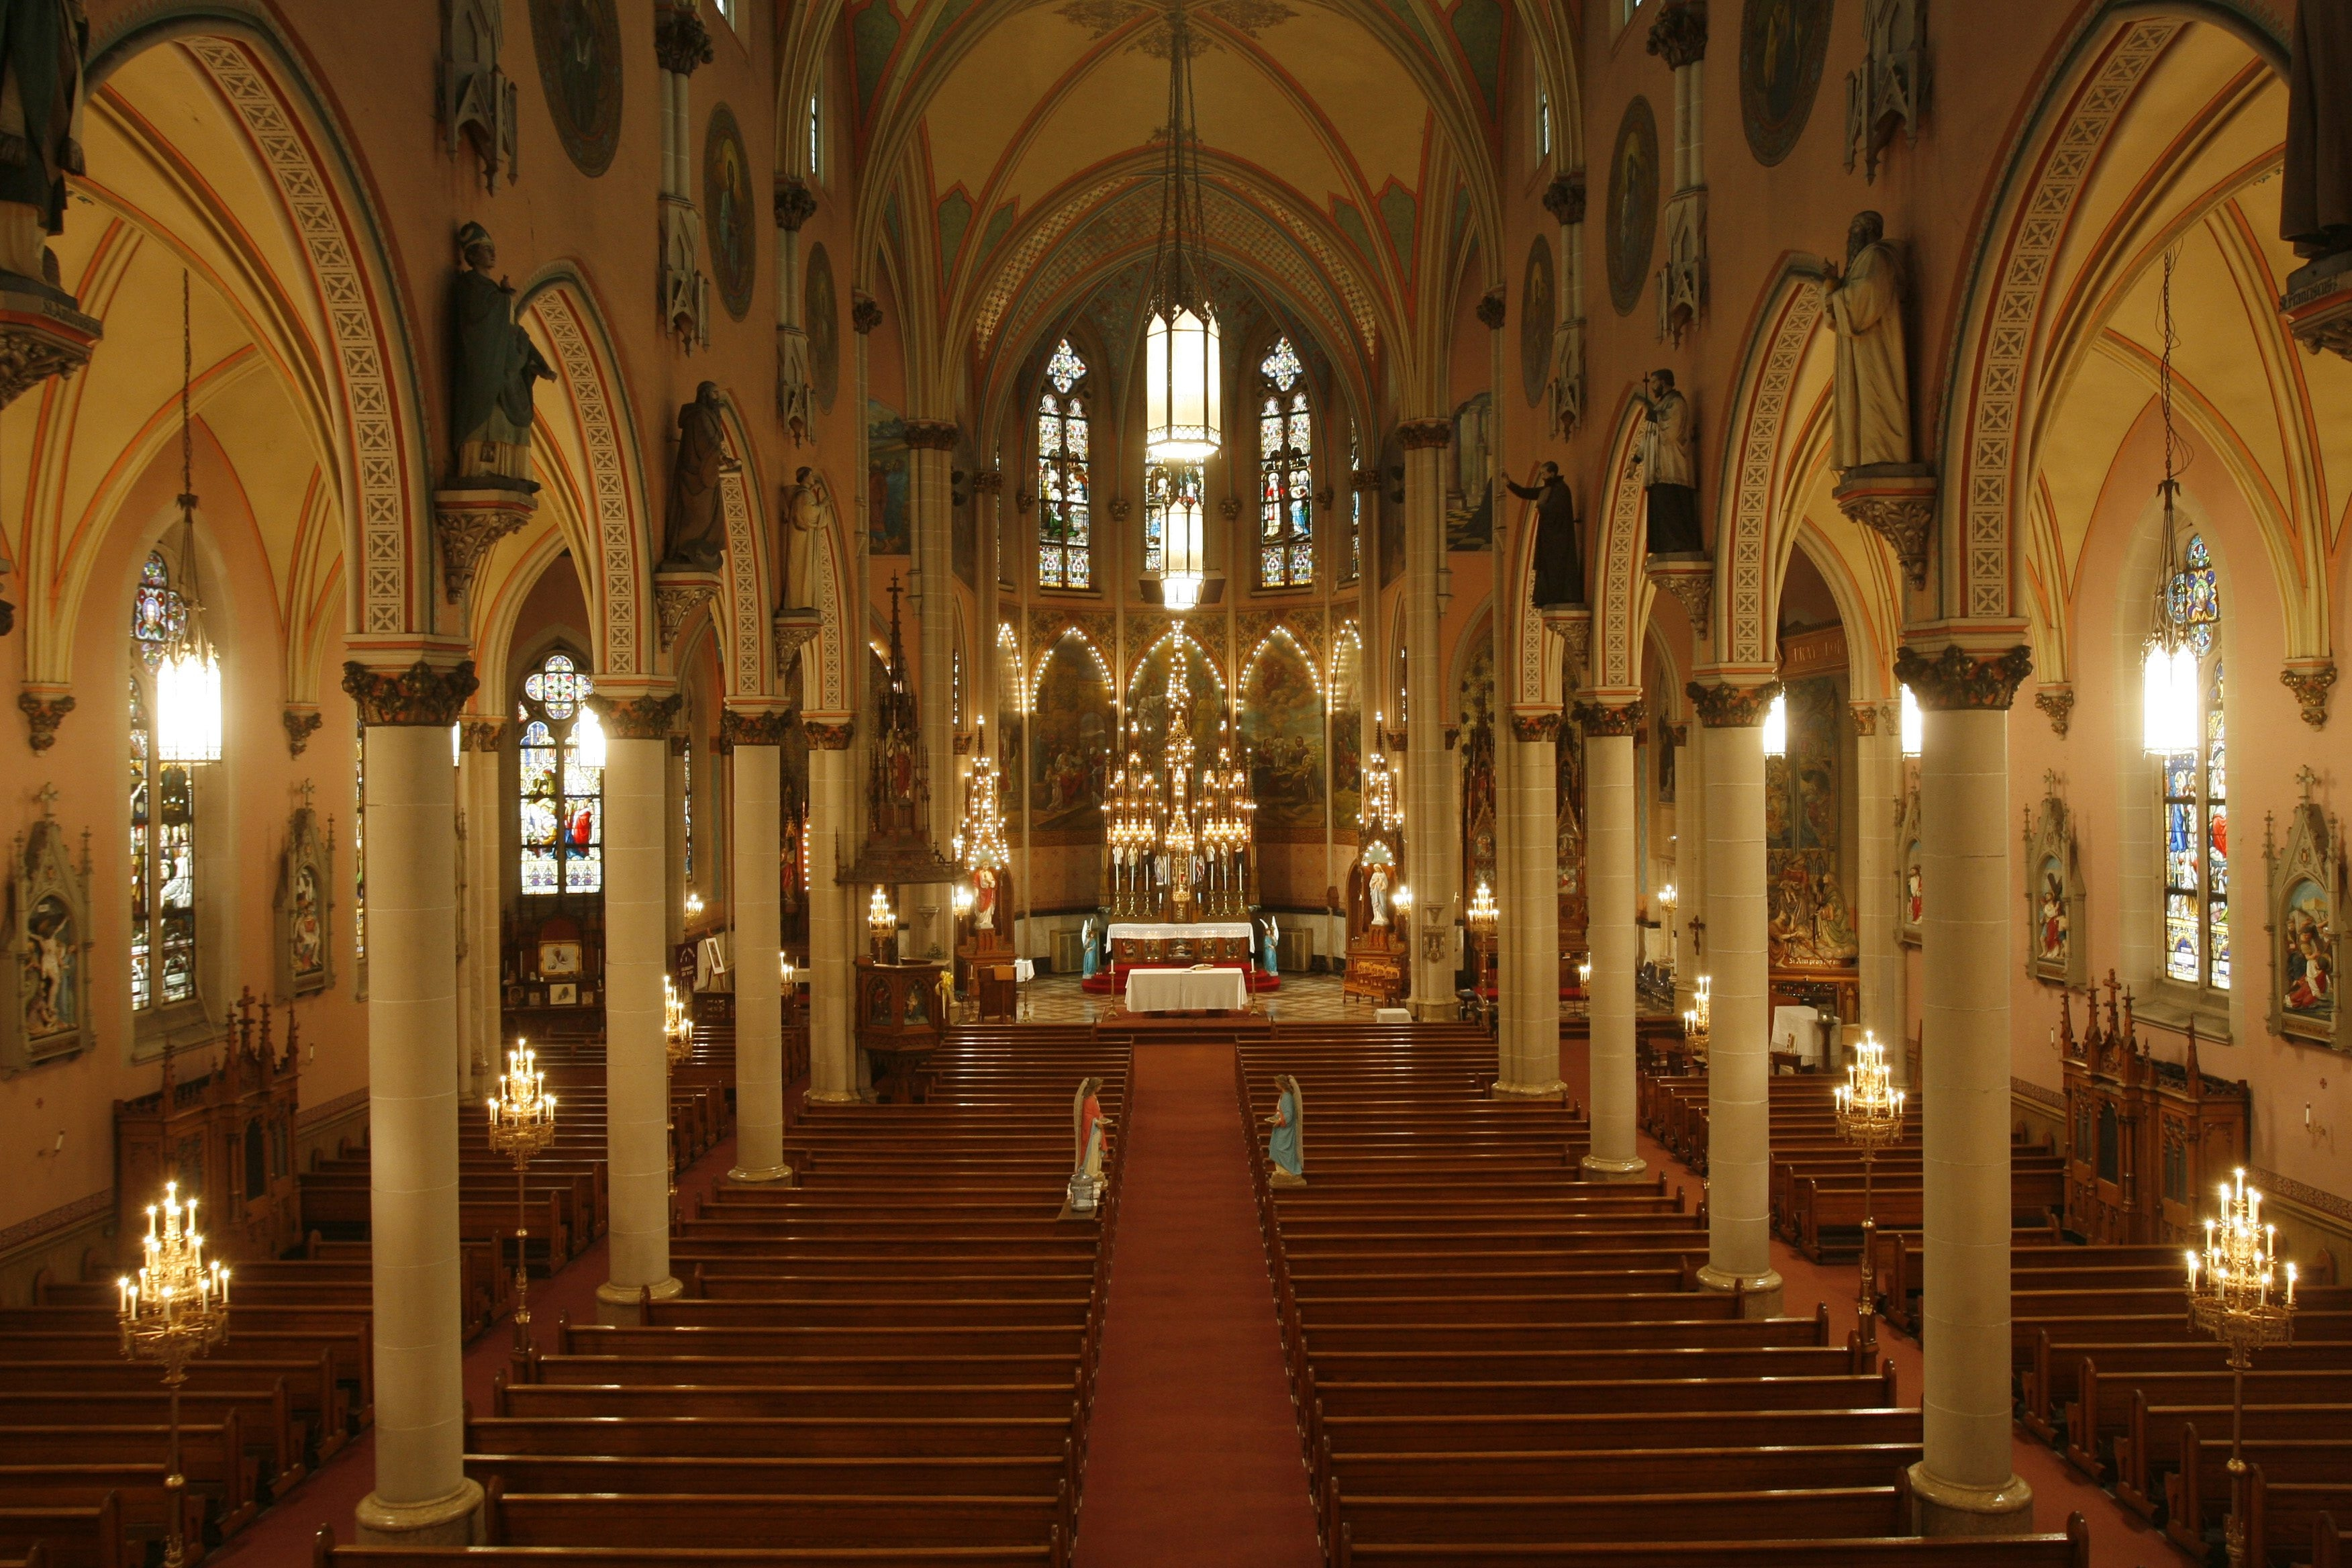 Much of the architectural value of St. Ann Church is in the interior ecclesiastical artwork and details, as seen here from the choir loft.